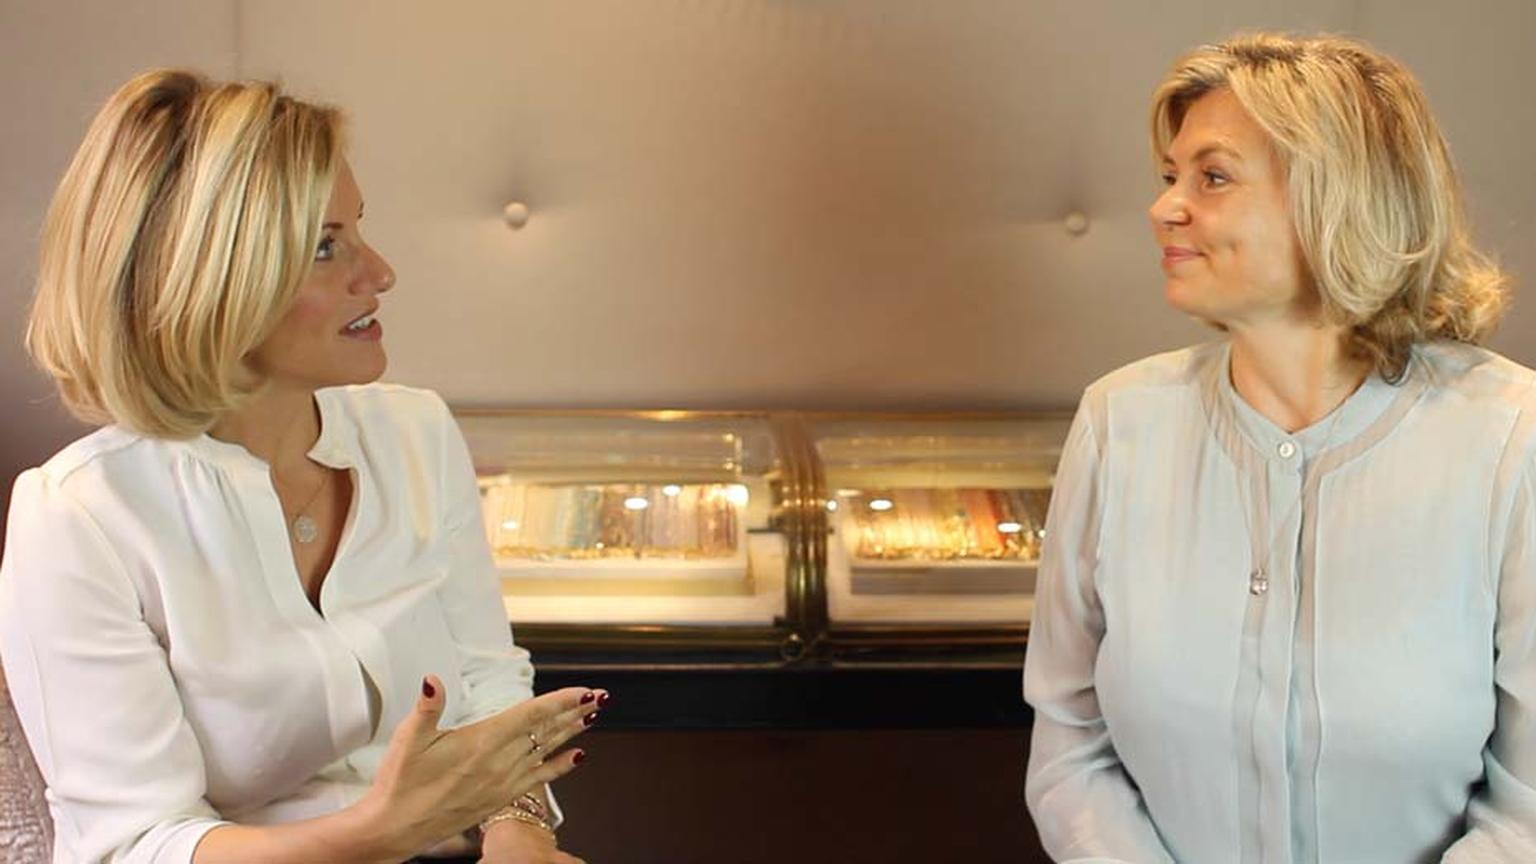 Bec Astley Clarke and Maria Doulton casually chat within the Astley Clarke London boutique, found within a quintessentially London Mews; The perfect place for a British luxury jewellery boutique.